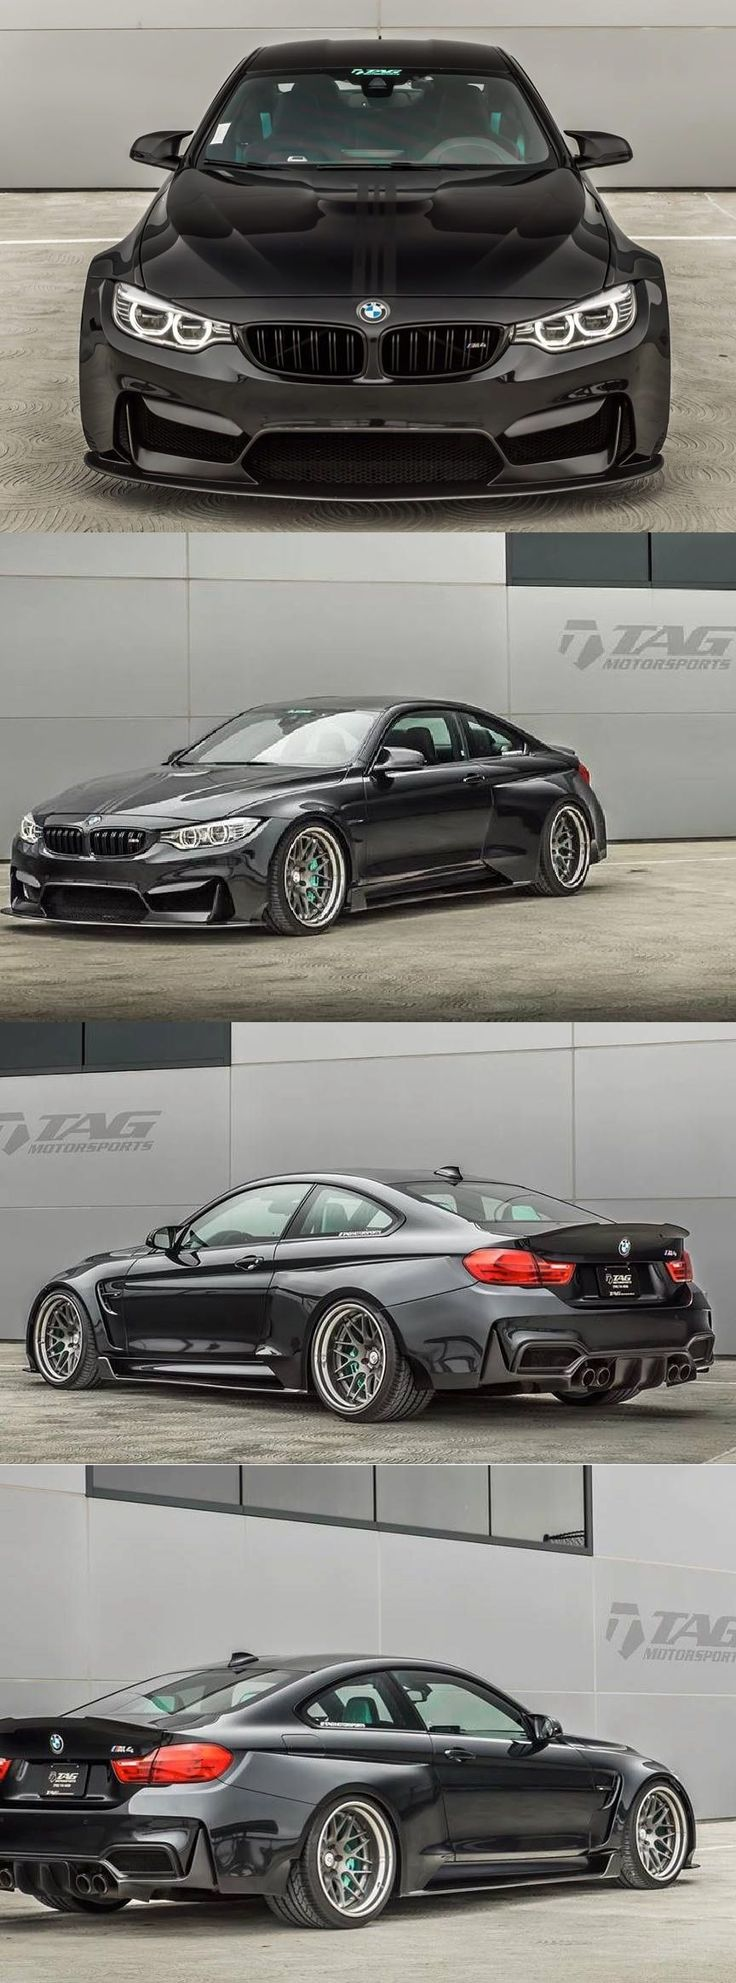 The Best-Looking BMW M4 by TAG Motorsports • Get more information of this car at tuningcult.com/ also get all the latest Car news, Latest Motor News, Latest Automobile News and tuning news.  #RePin by AT Social Media Marketing - Pinterest Marketing Specialists ATSocialMedia.co.uk